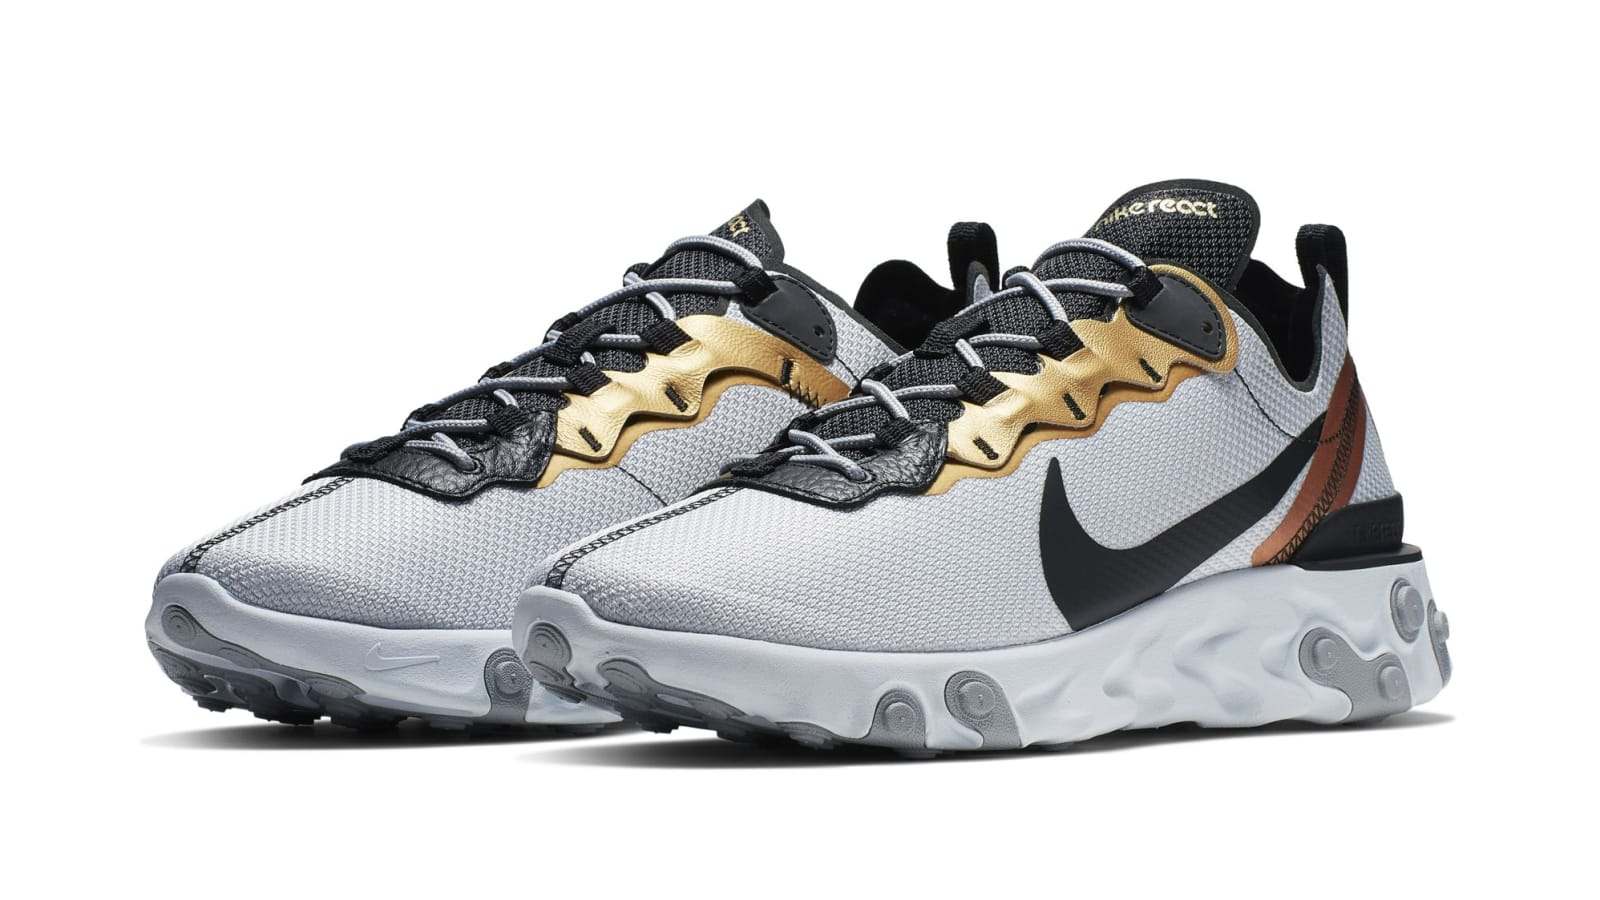 1547038729ae Metallic Gold Comes To The Nike React Element 55